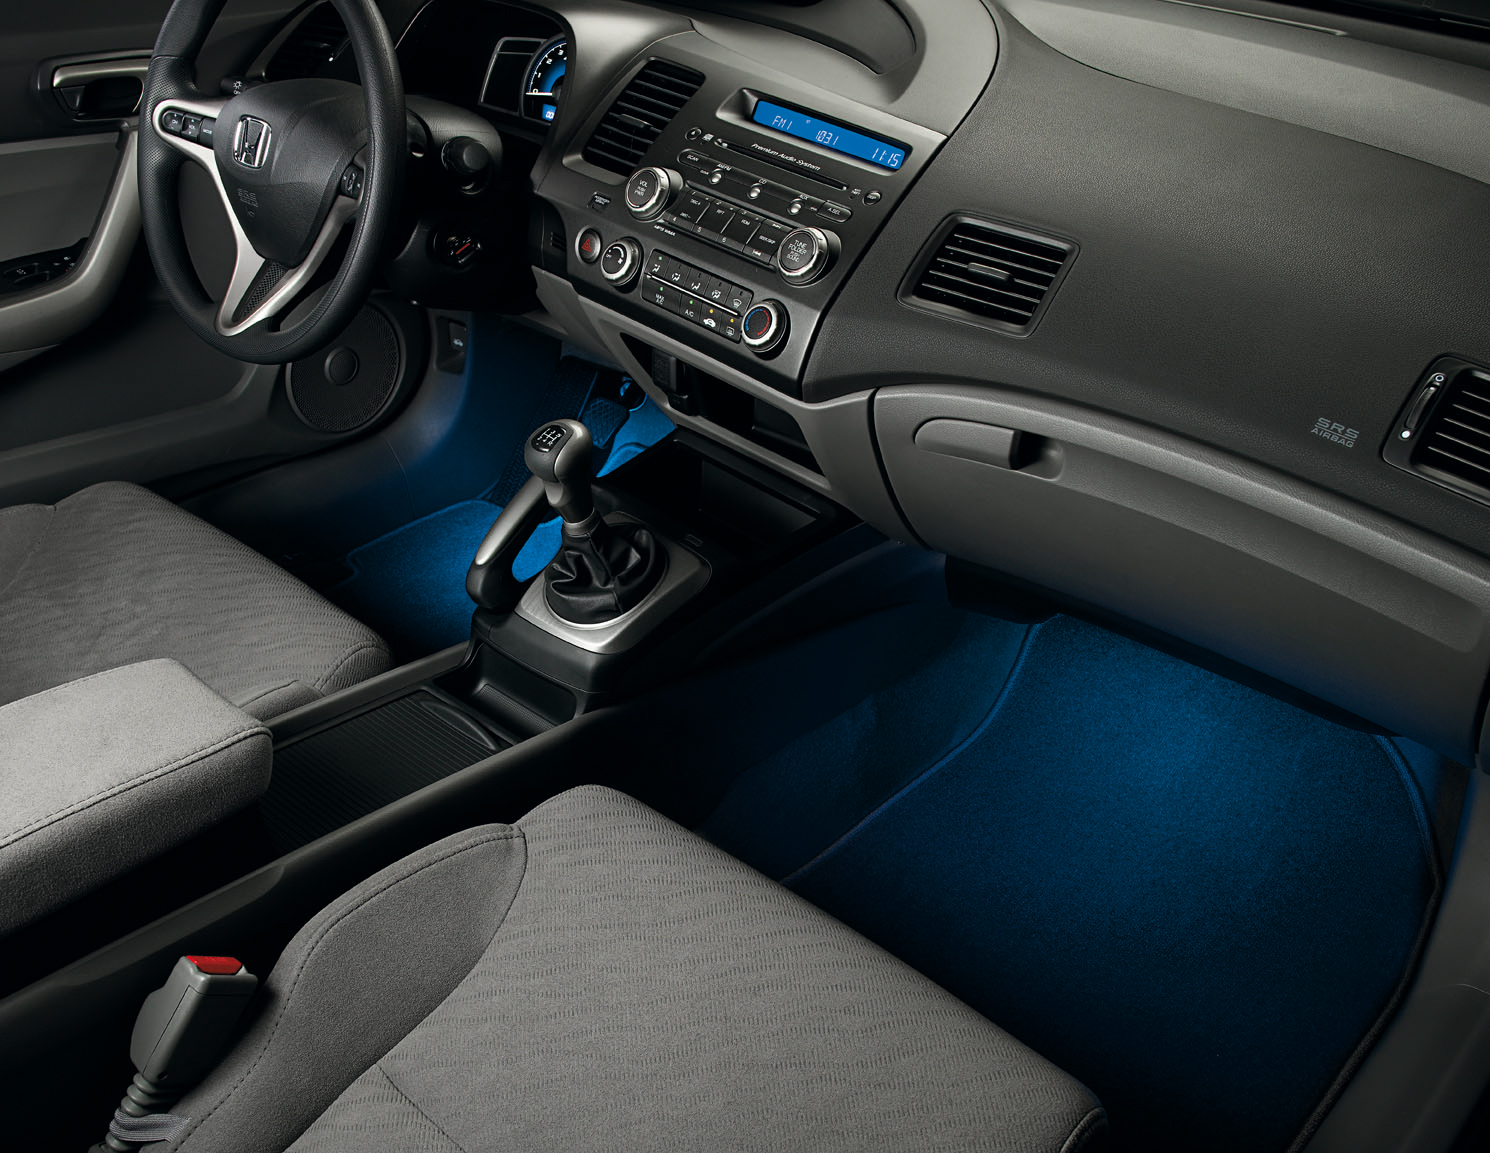 2016 Honda Accord Lx S >> Interior Illumination Civic Coupe - $83.30